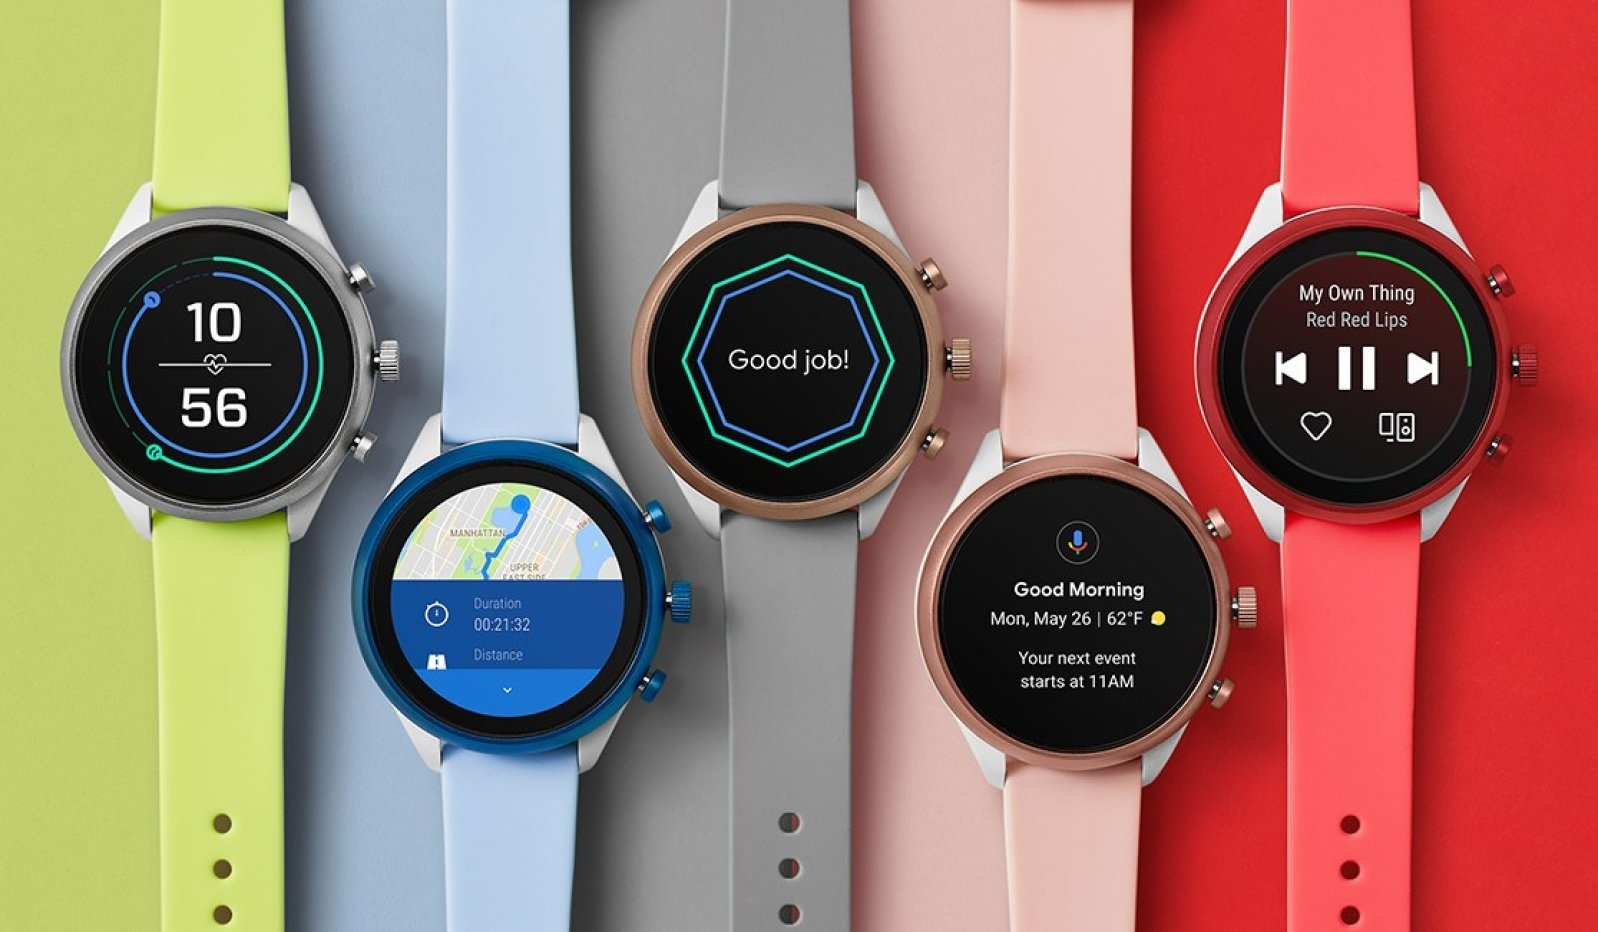 Fossil has released a cool smart watch for the Wear OS for $ 250